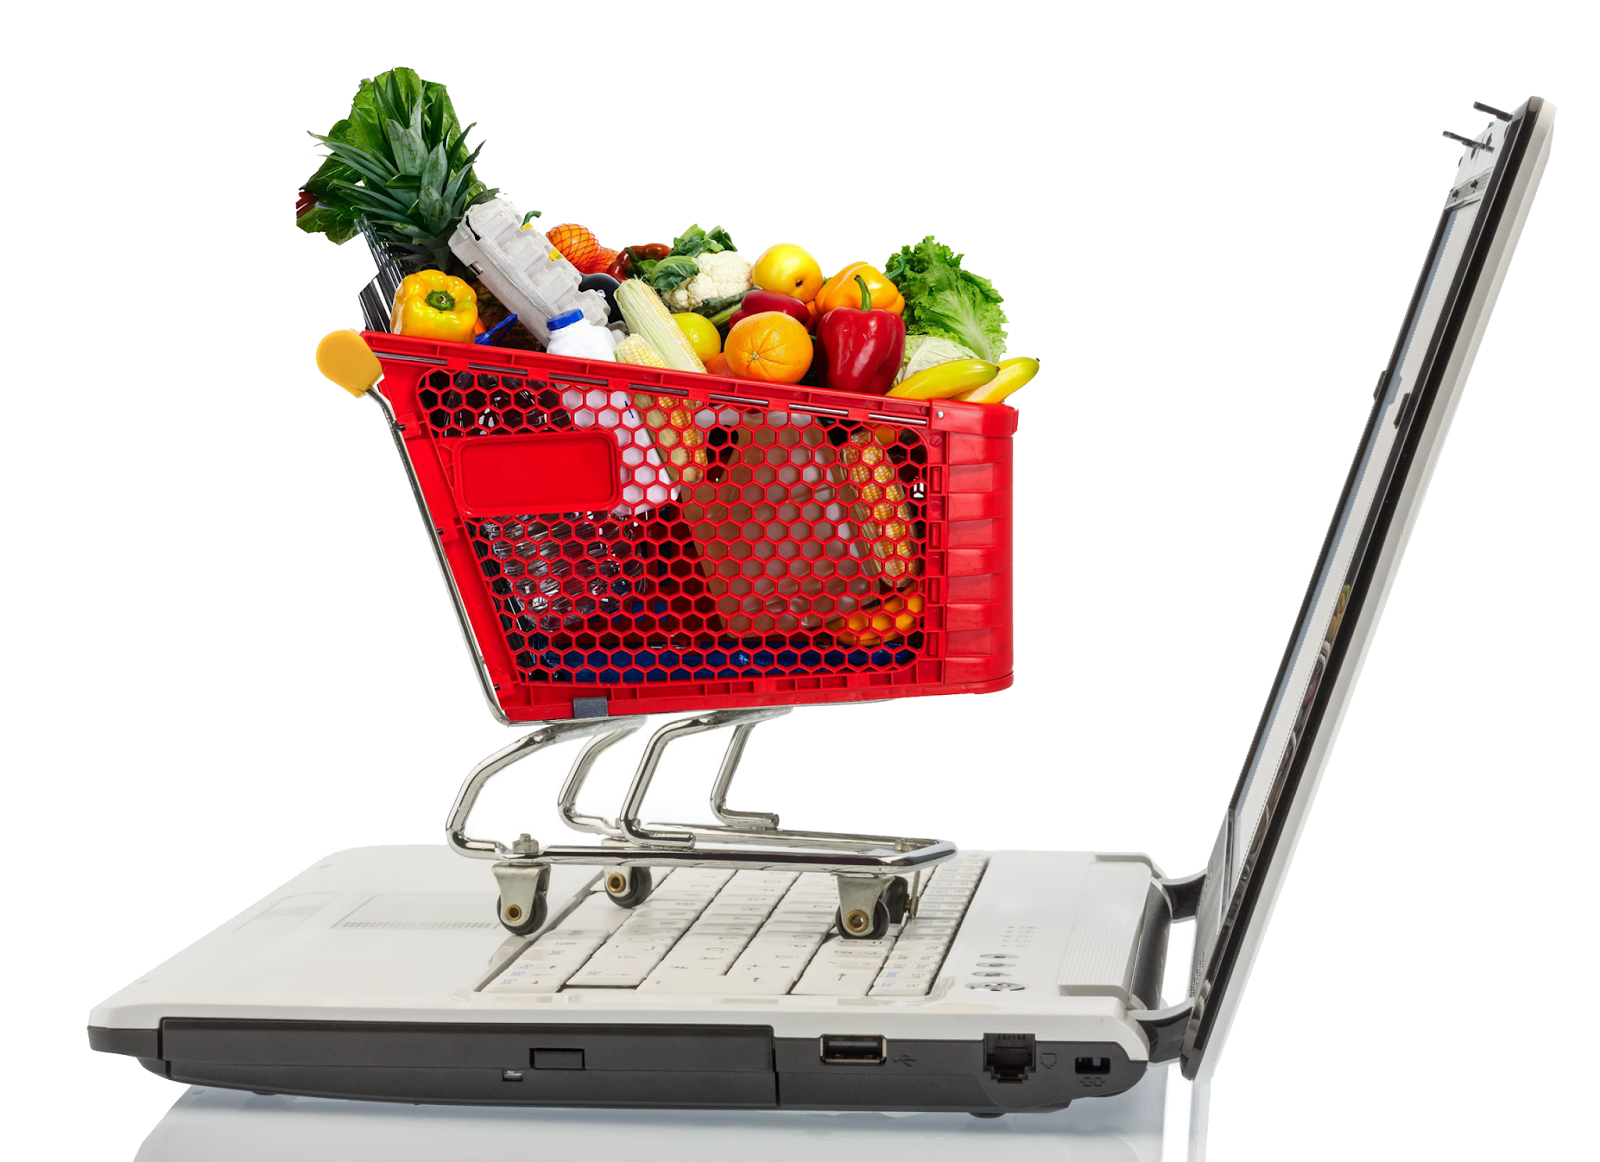 Cheapest Online Food Shopping Sites